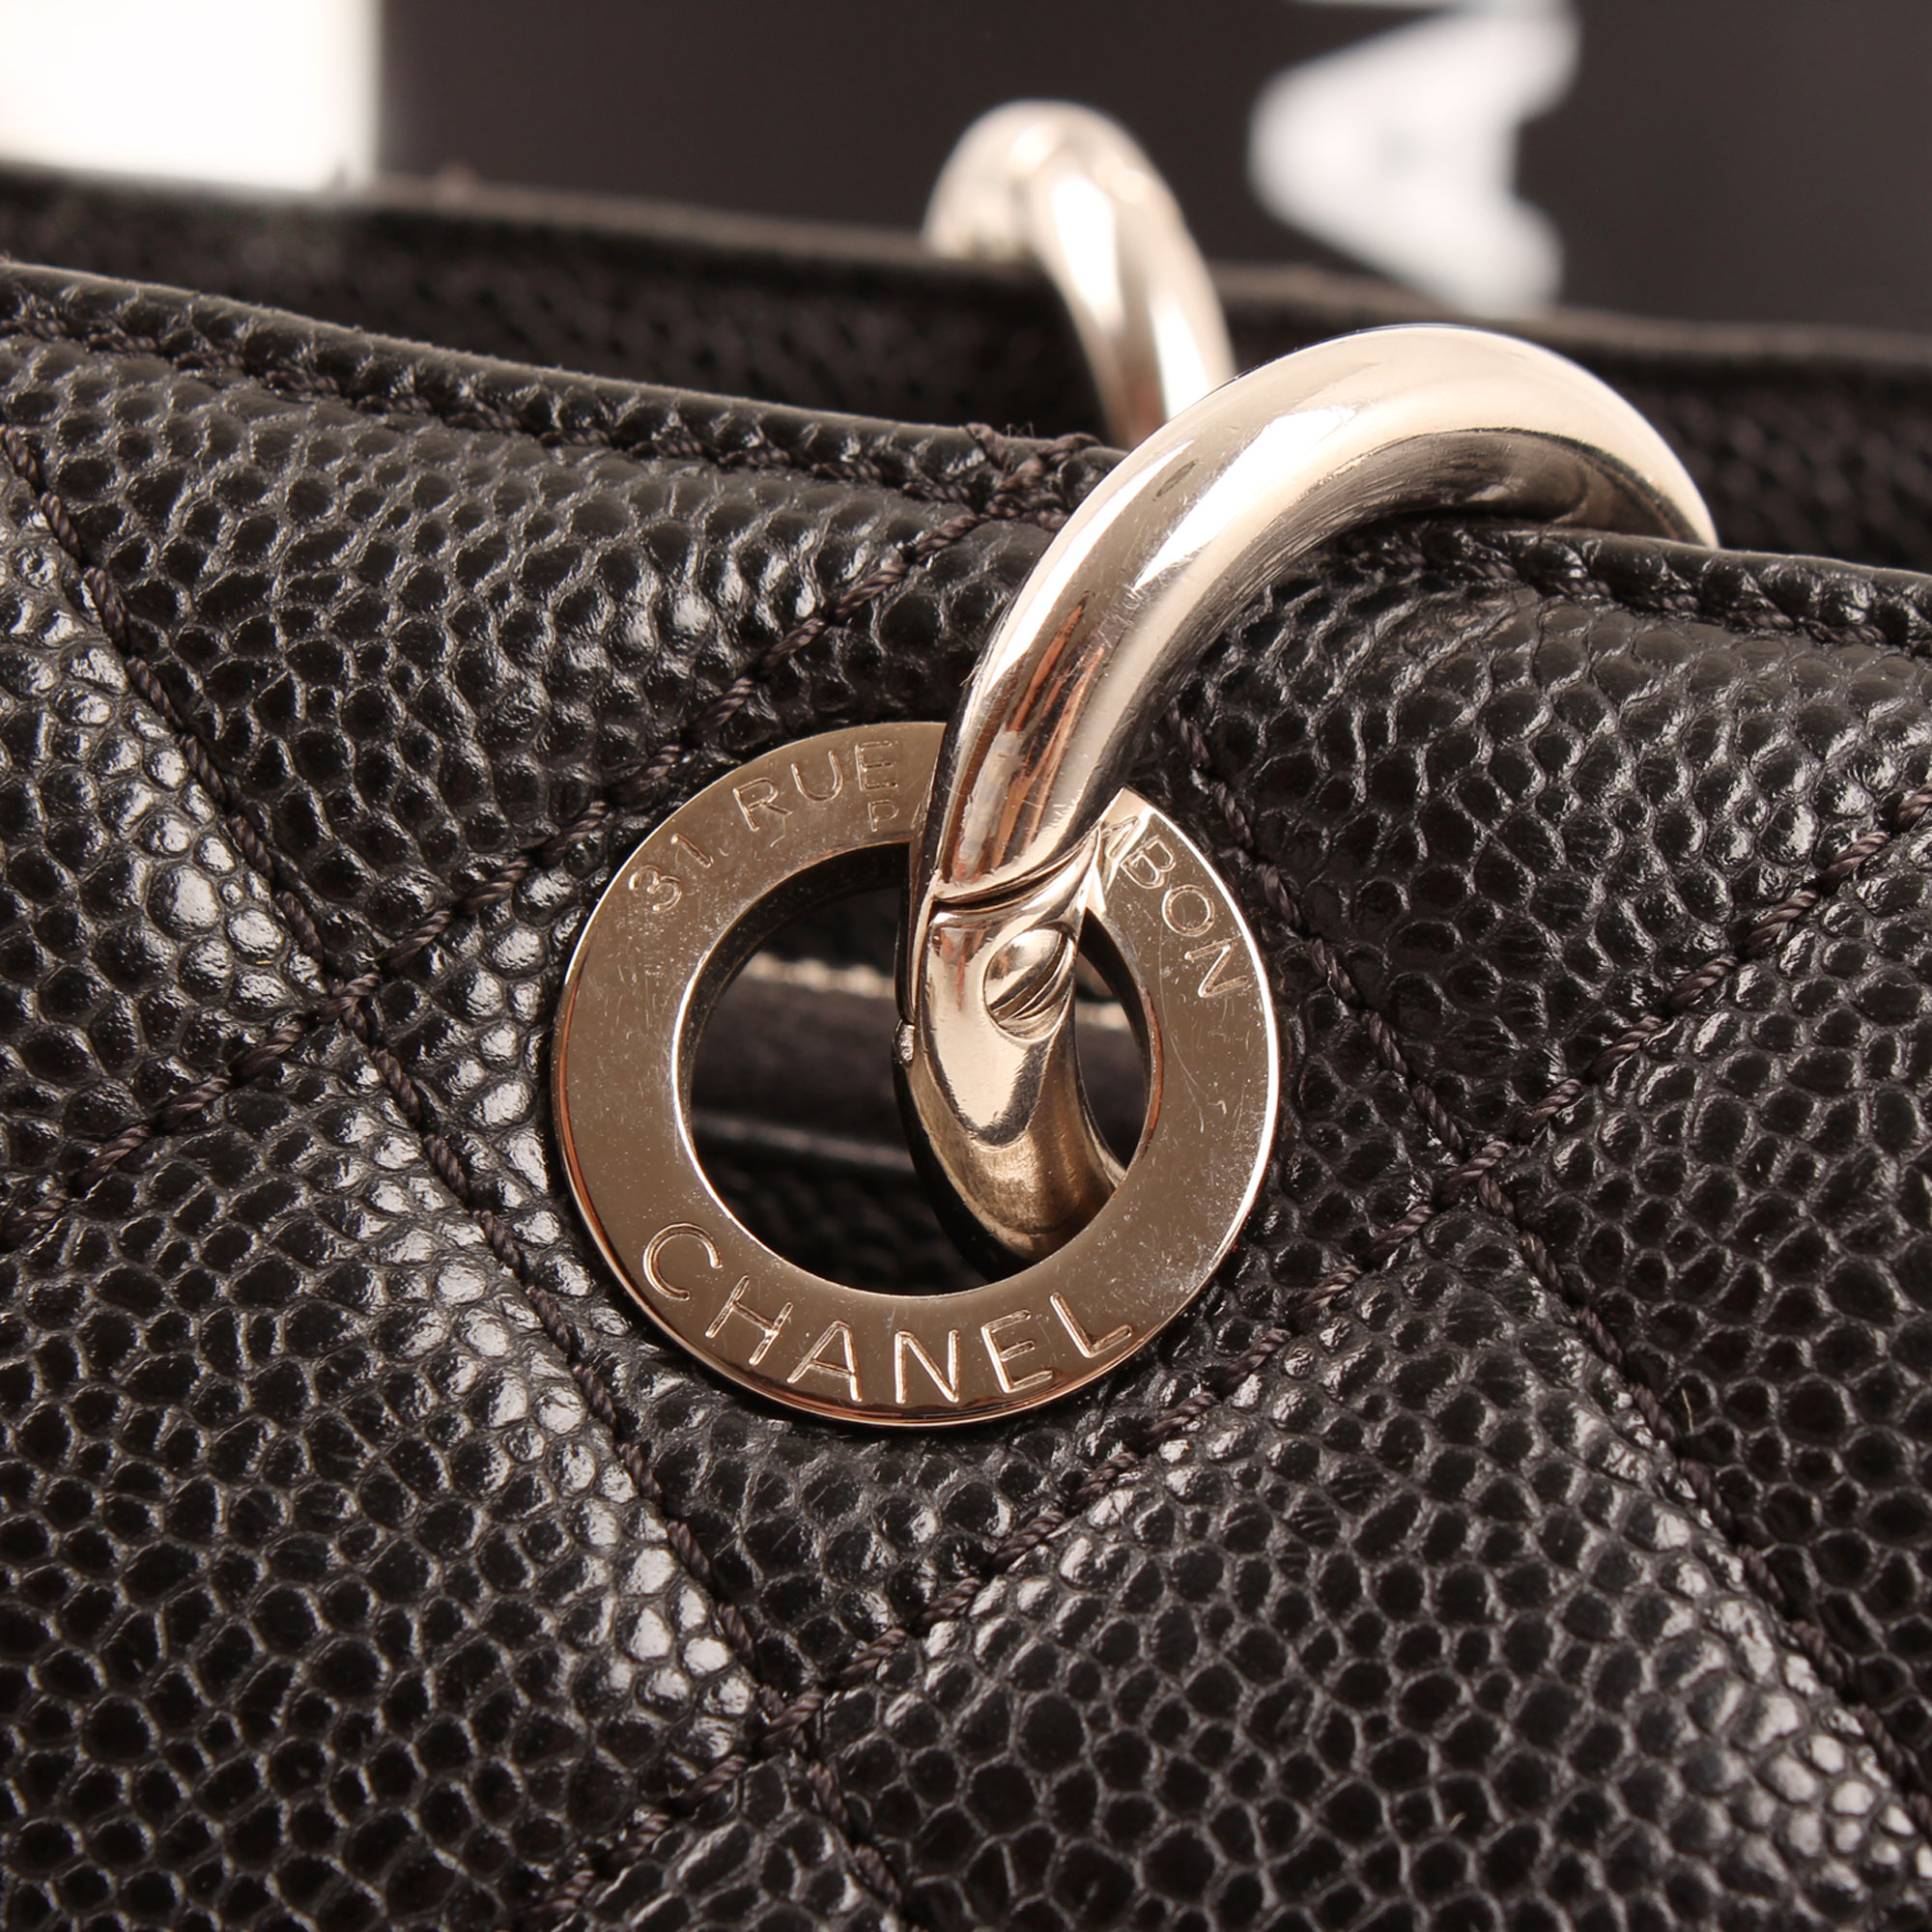 Hardware image of chanel grand shopping tote bag black caviar leather